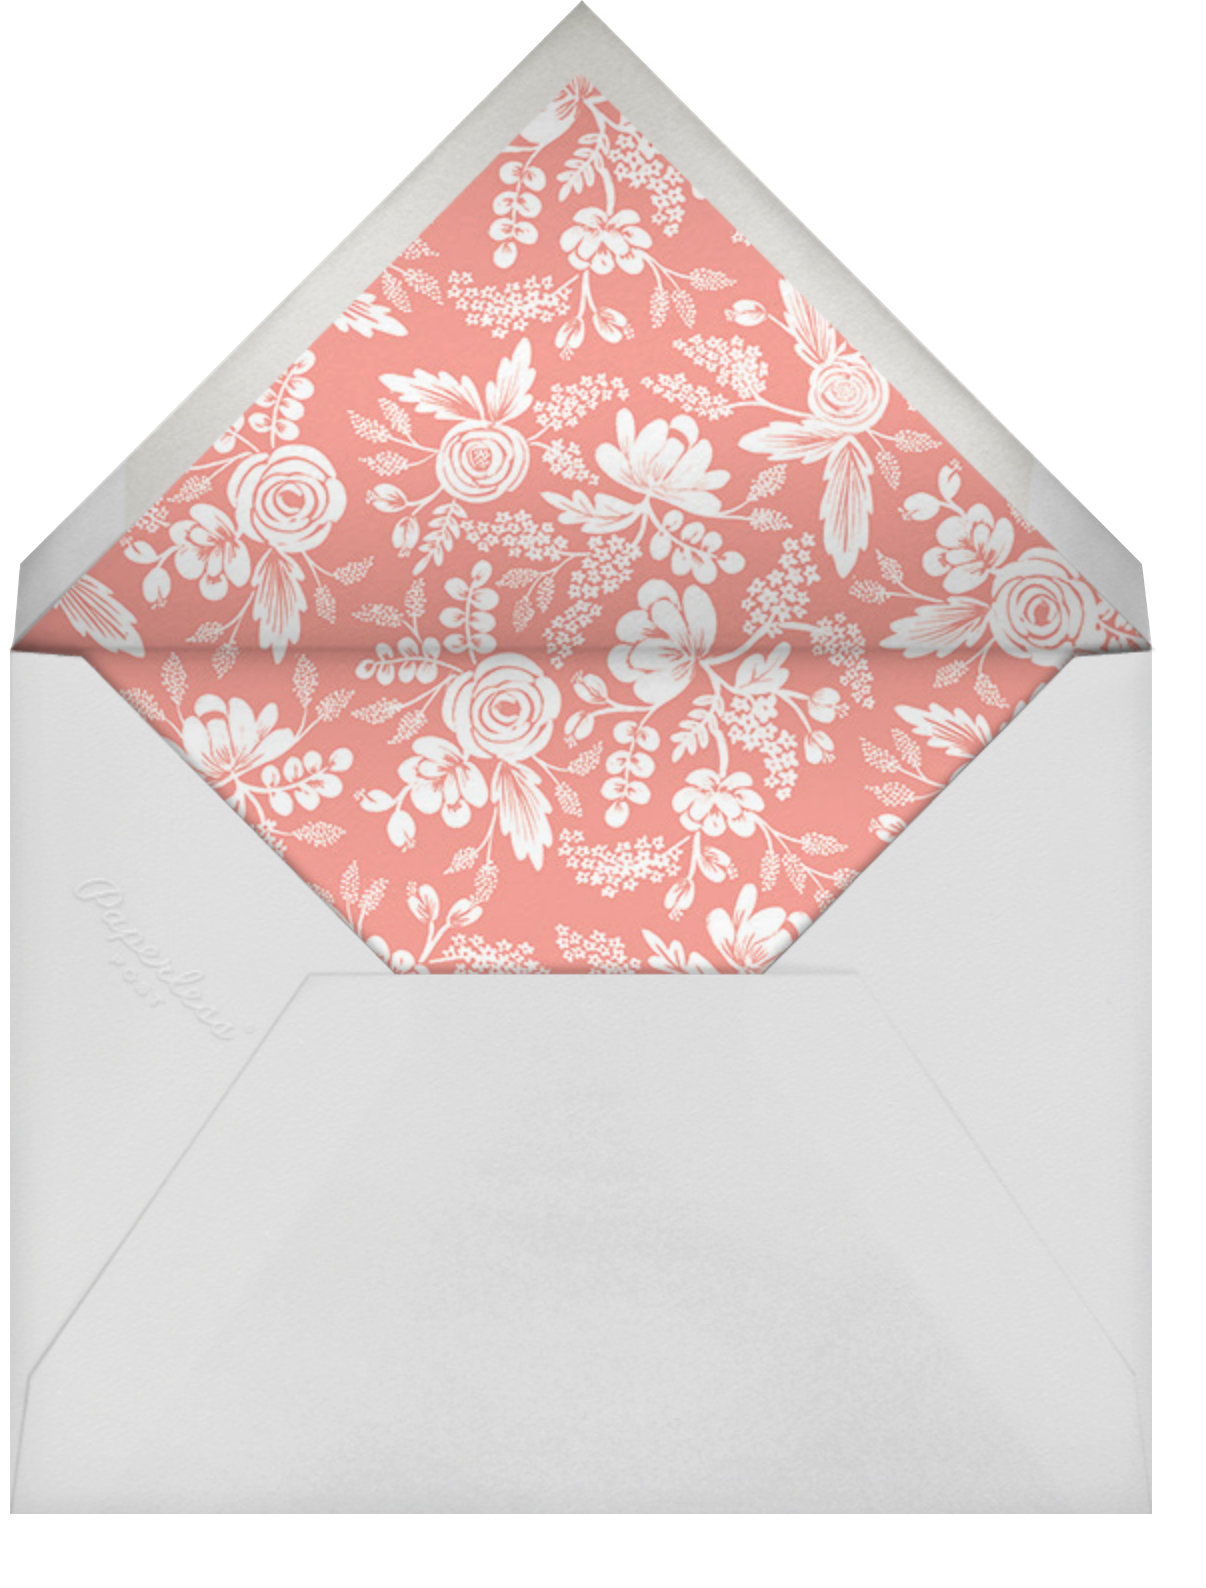 Heather and Lace (Square) - Silver - Rifle Paper Co. - Bridal shower - envelope back